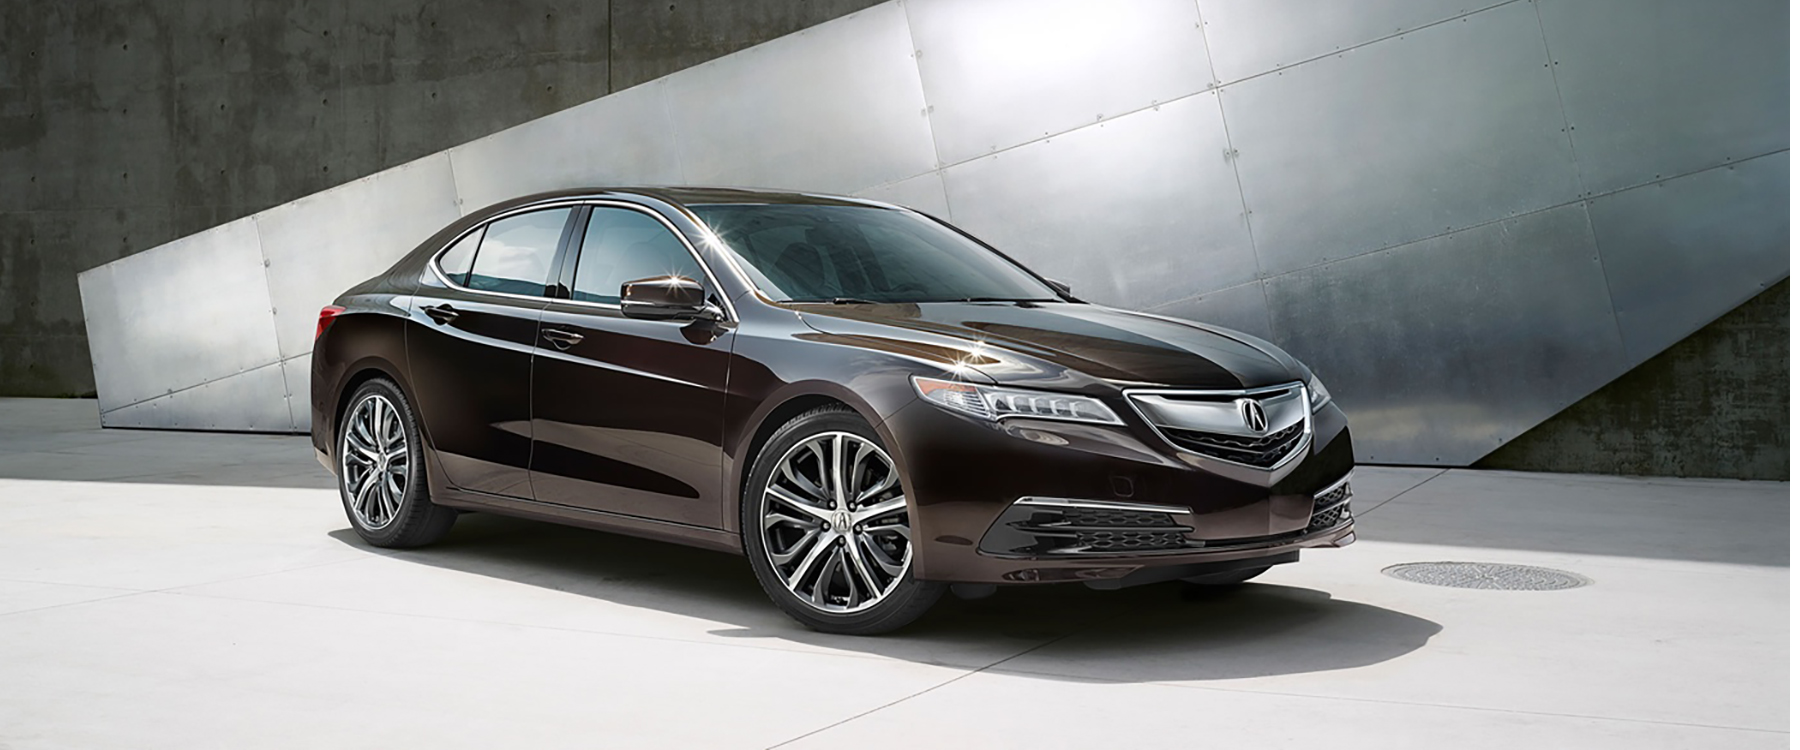 Acura Offers The Most Affordable Luxury Cars On The Road - Acura tl lease offers